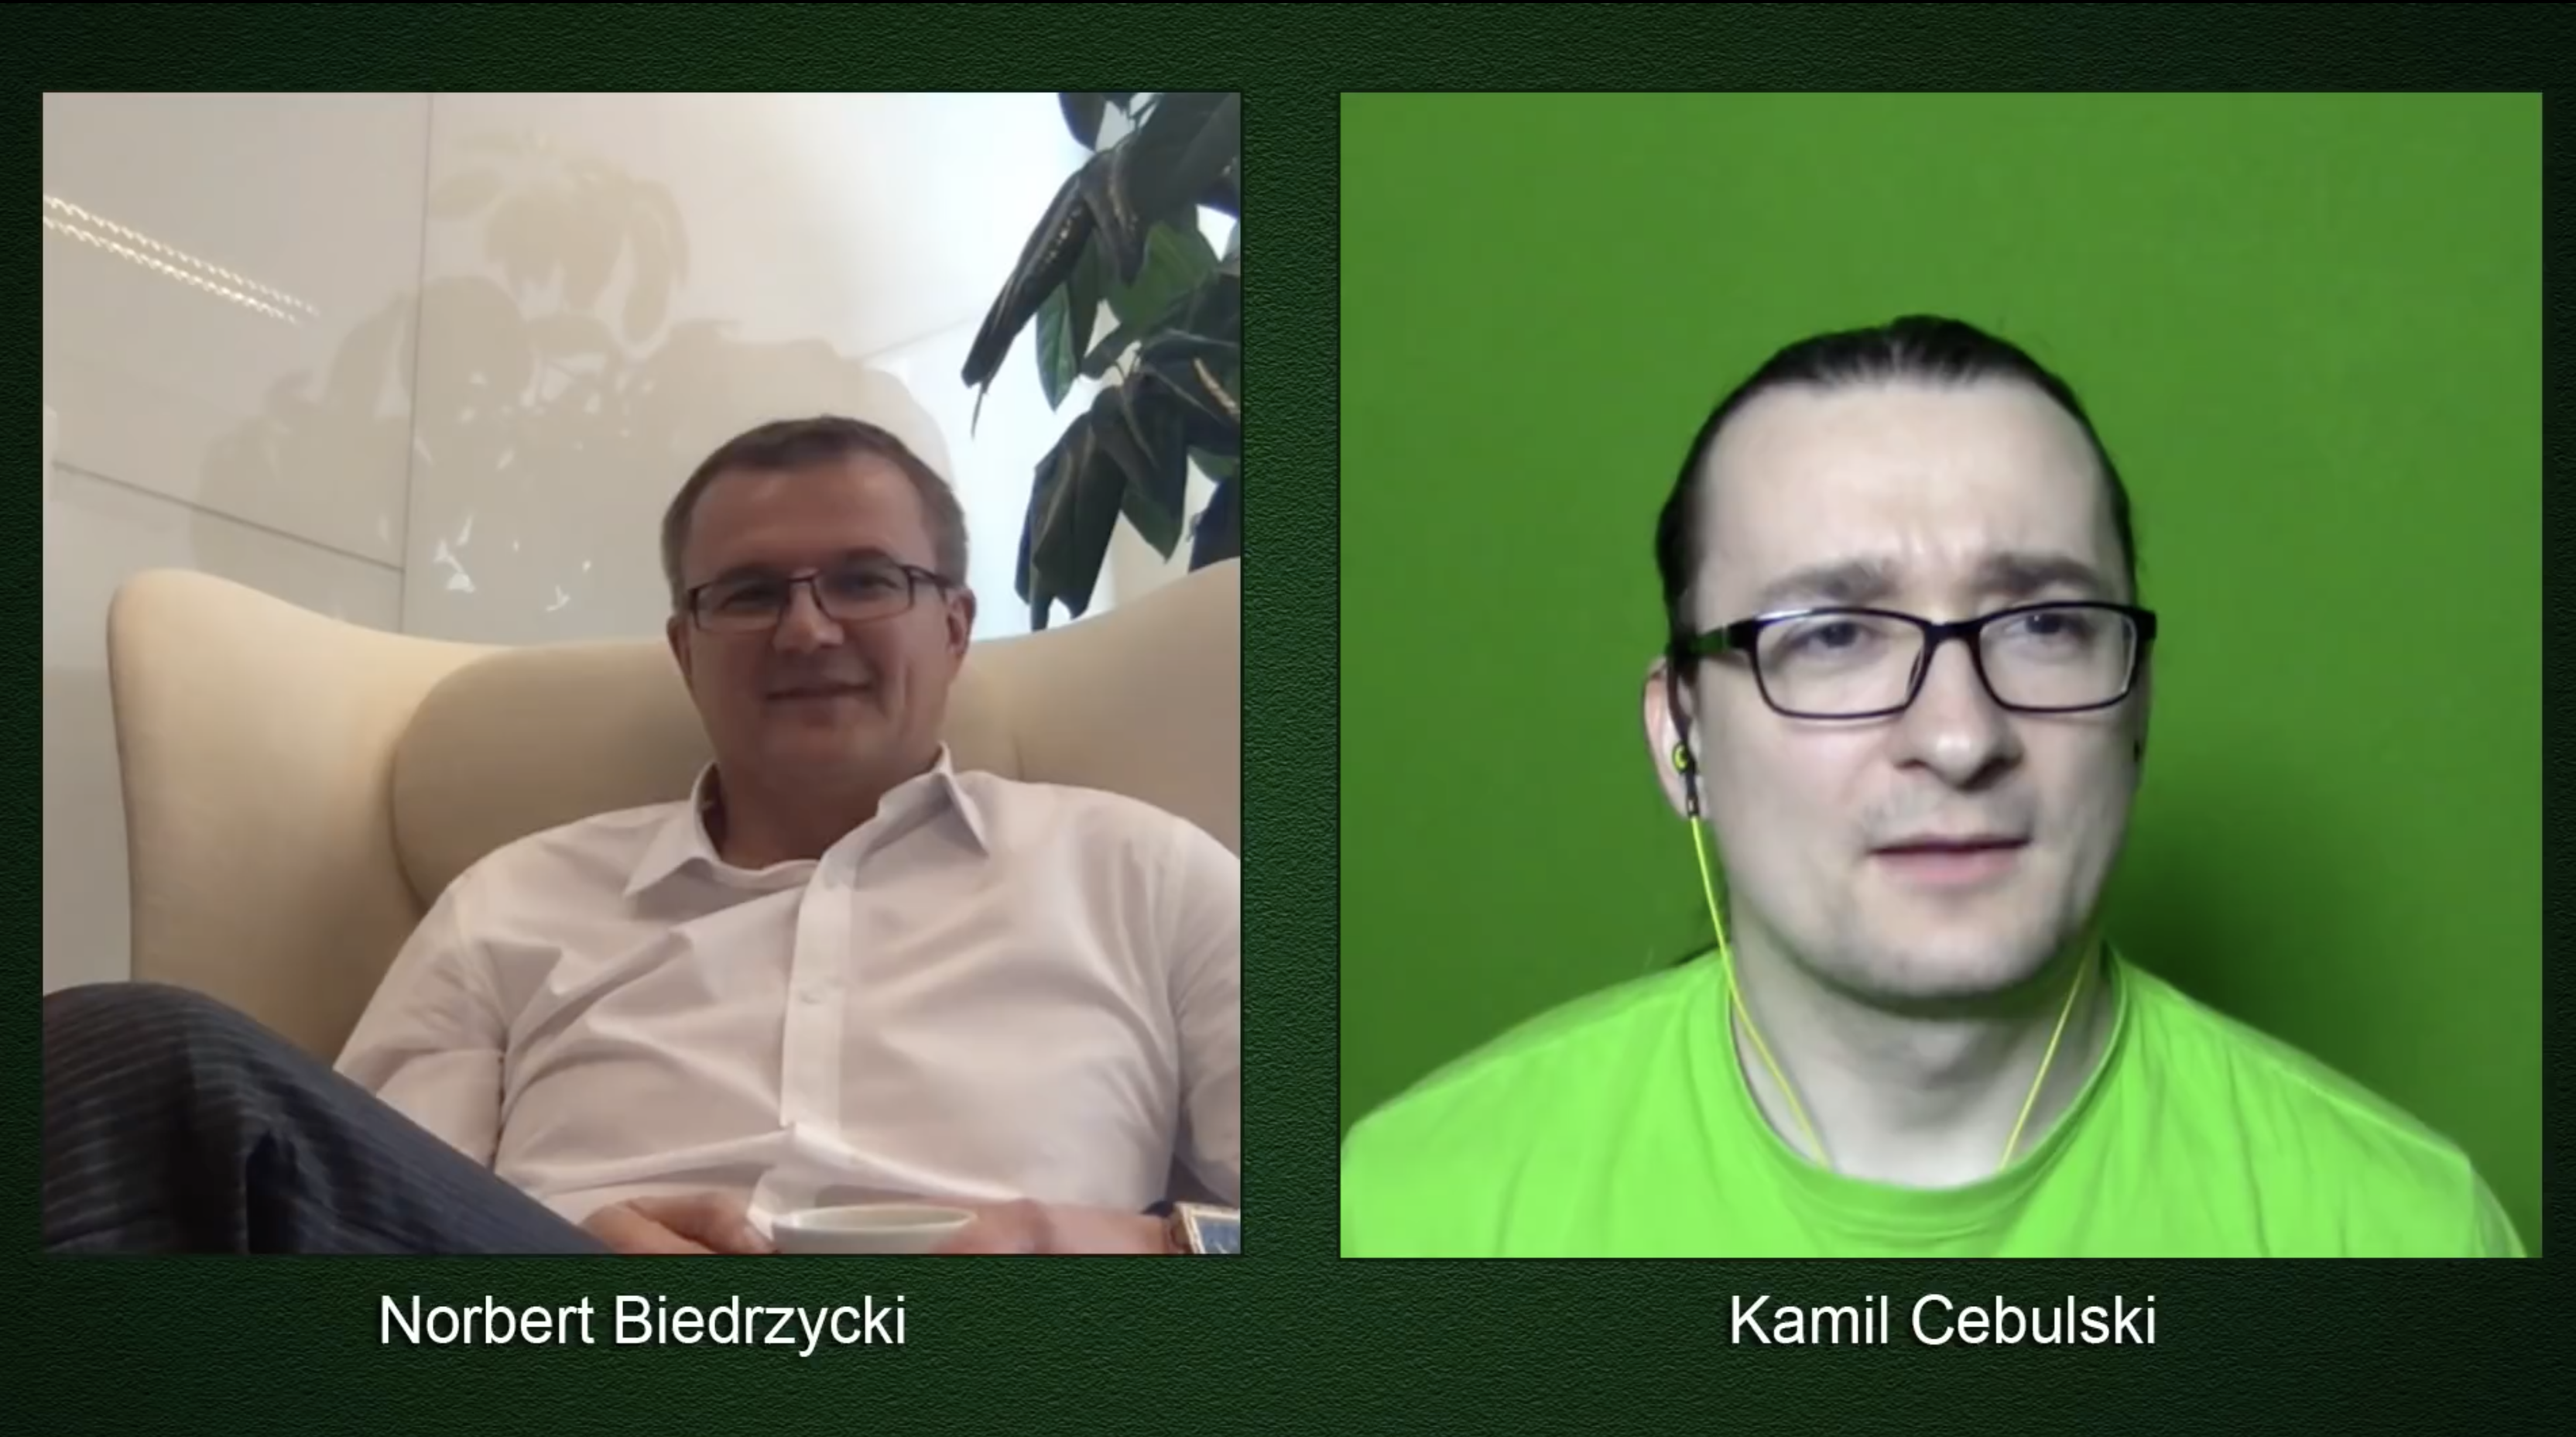 Youtube - Norbert Biedrzycki and Kamil Cebulski